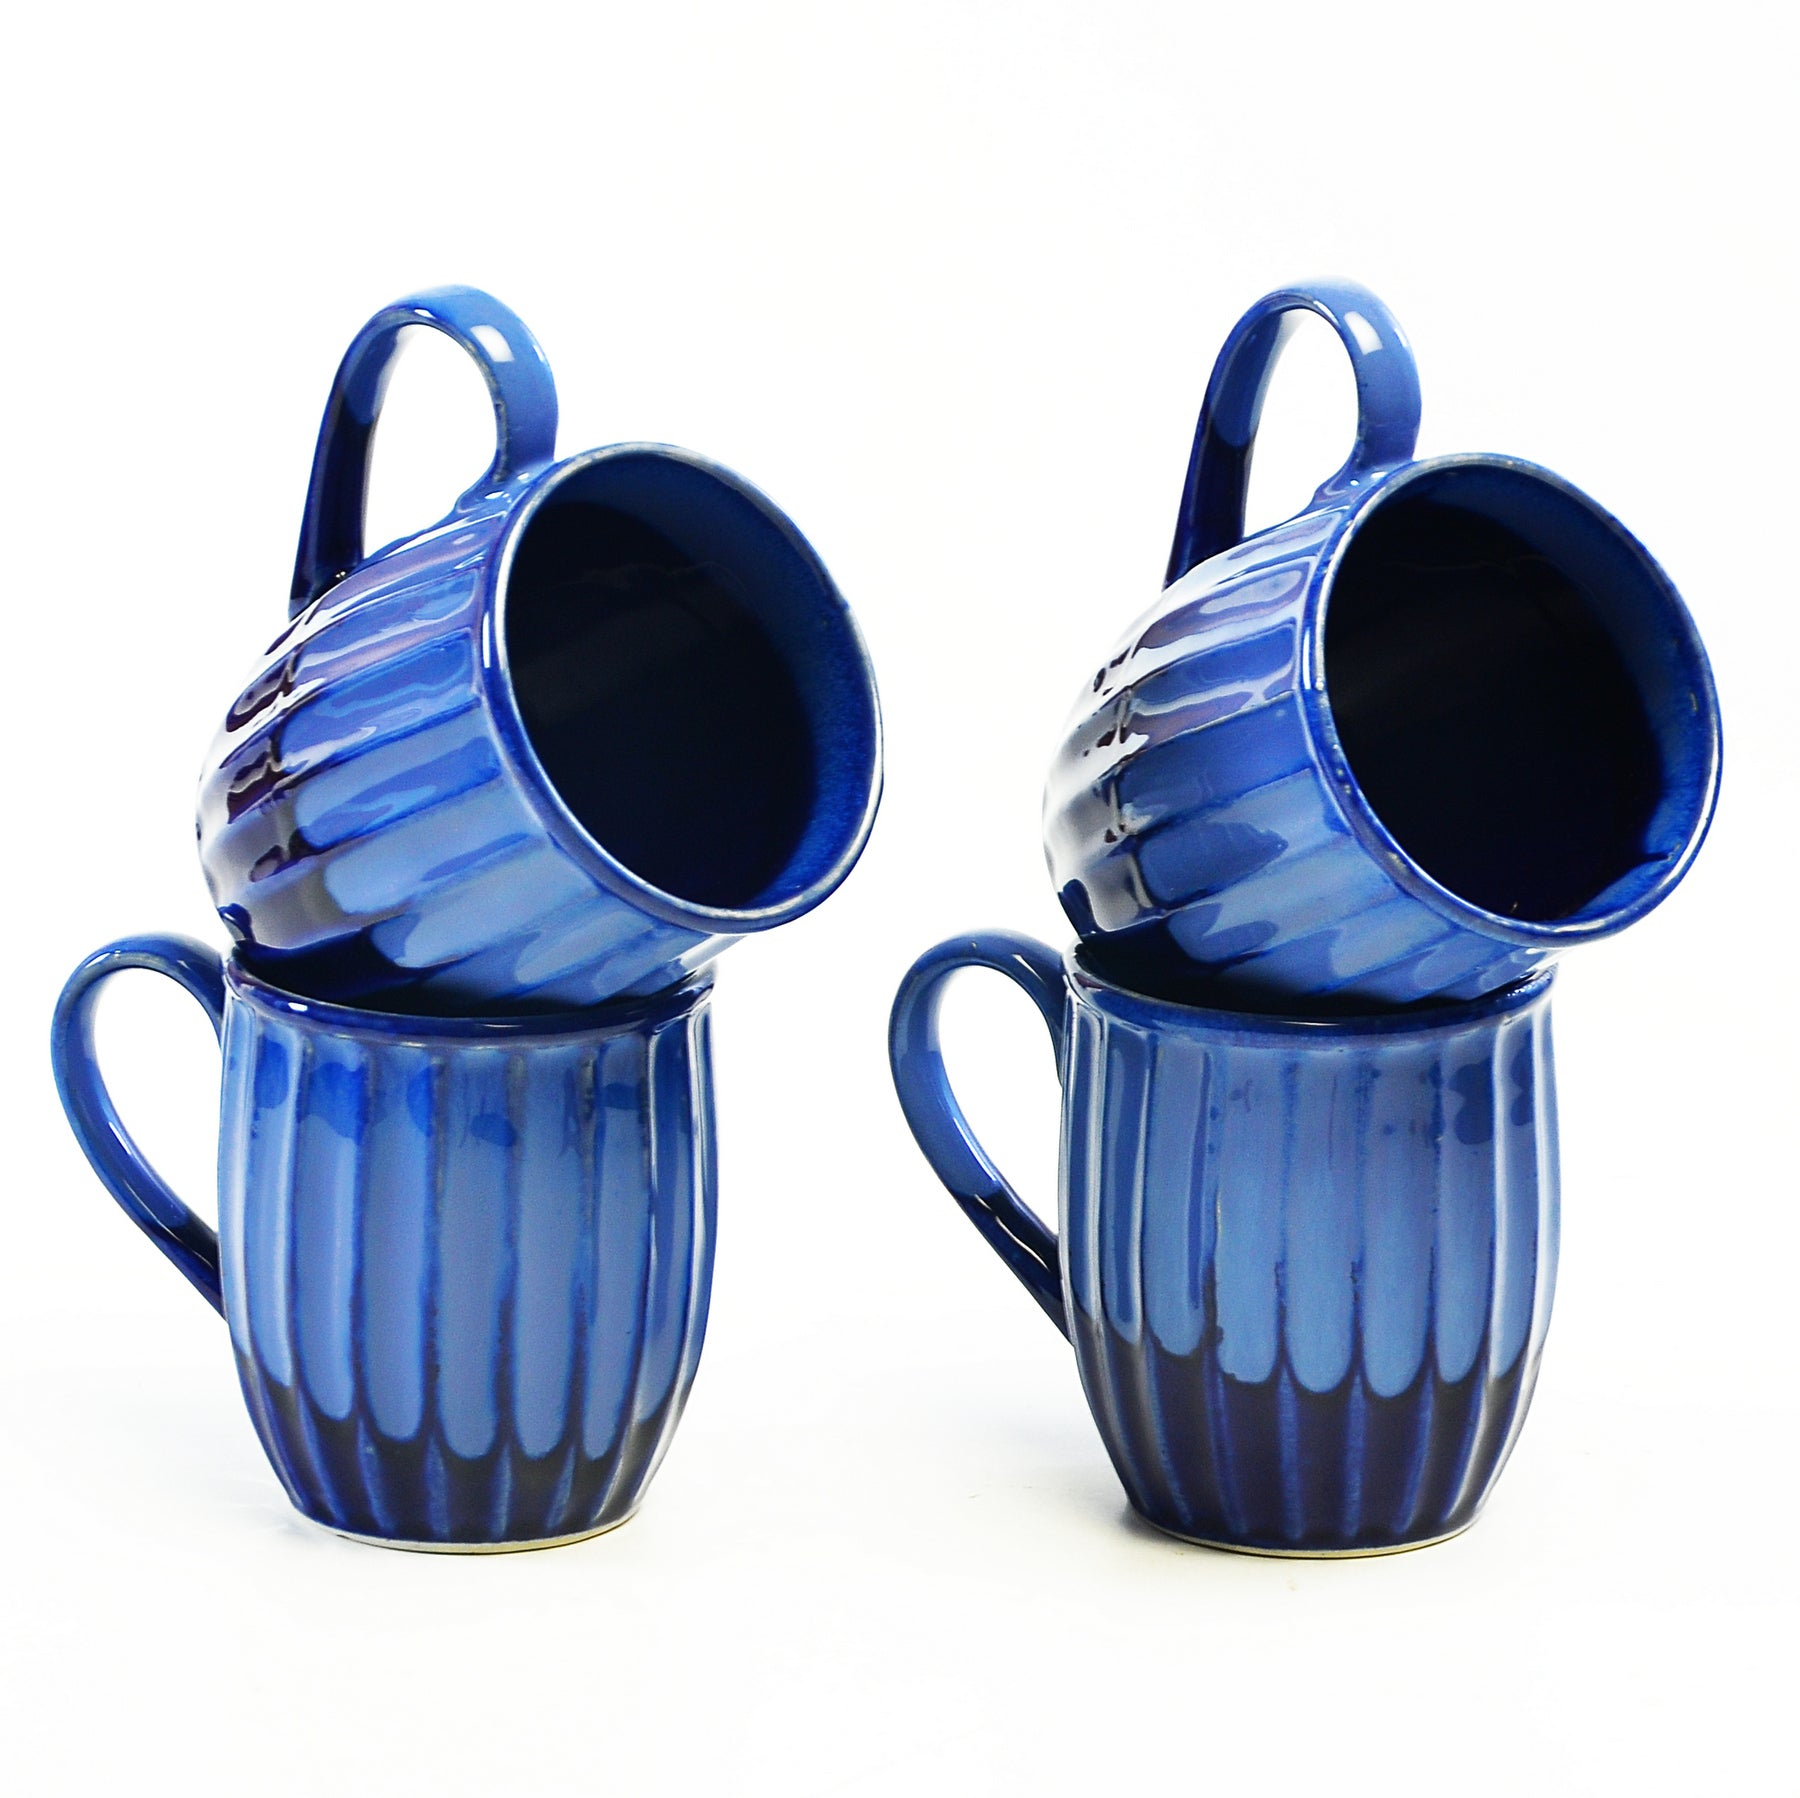 viiva-blue-coffee-mugs-dec5515